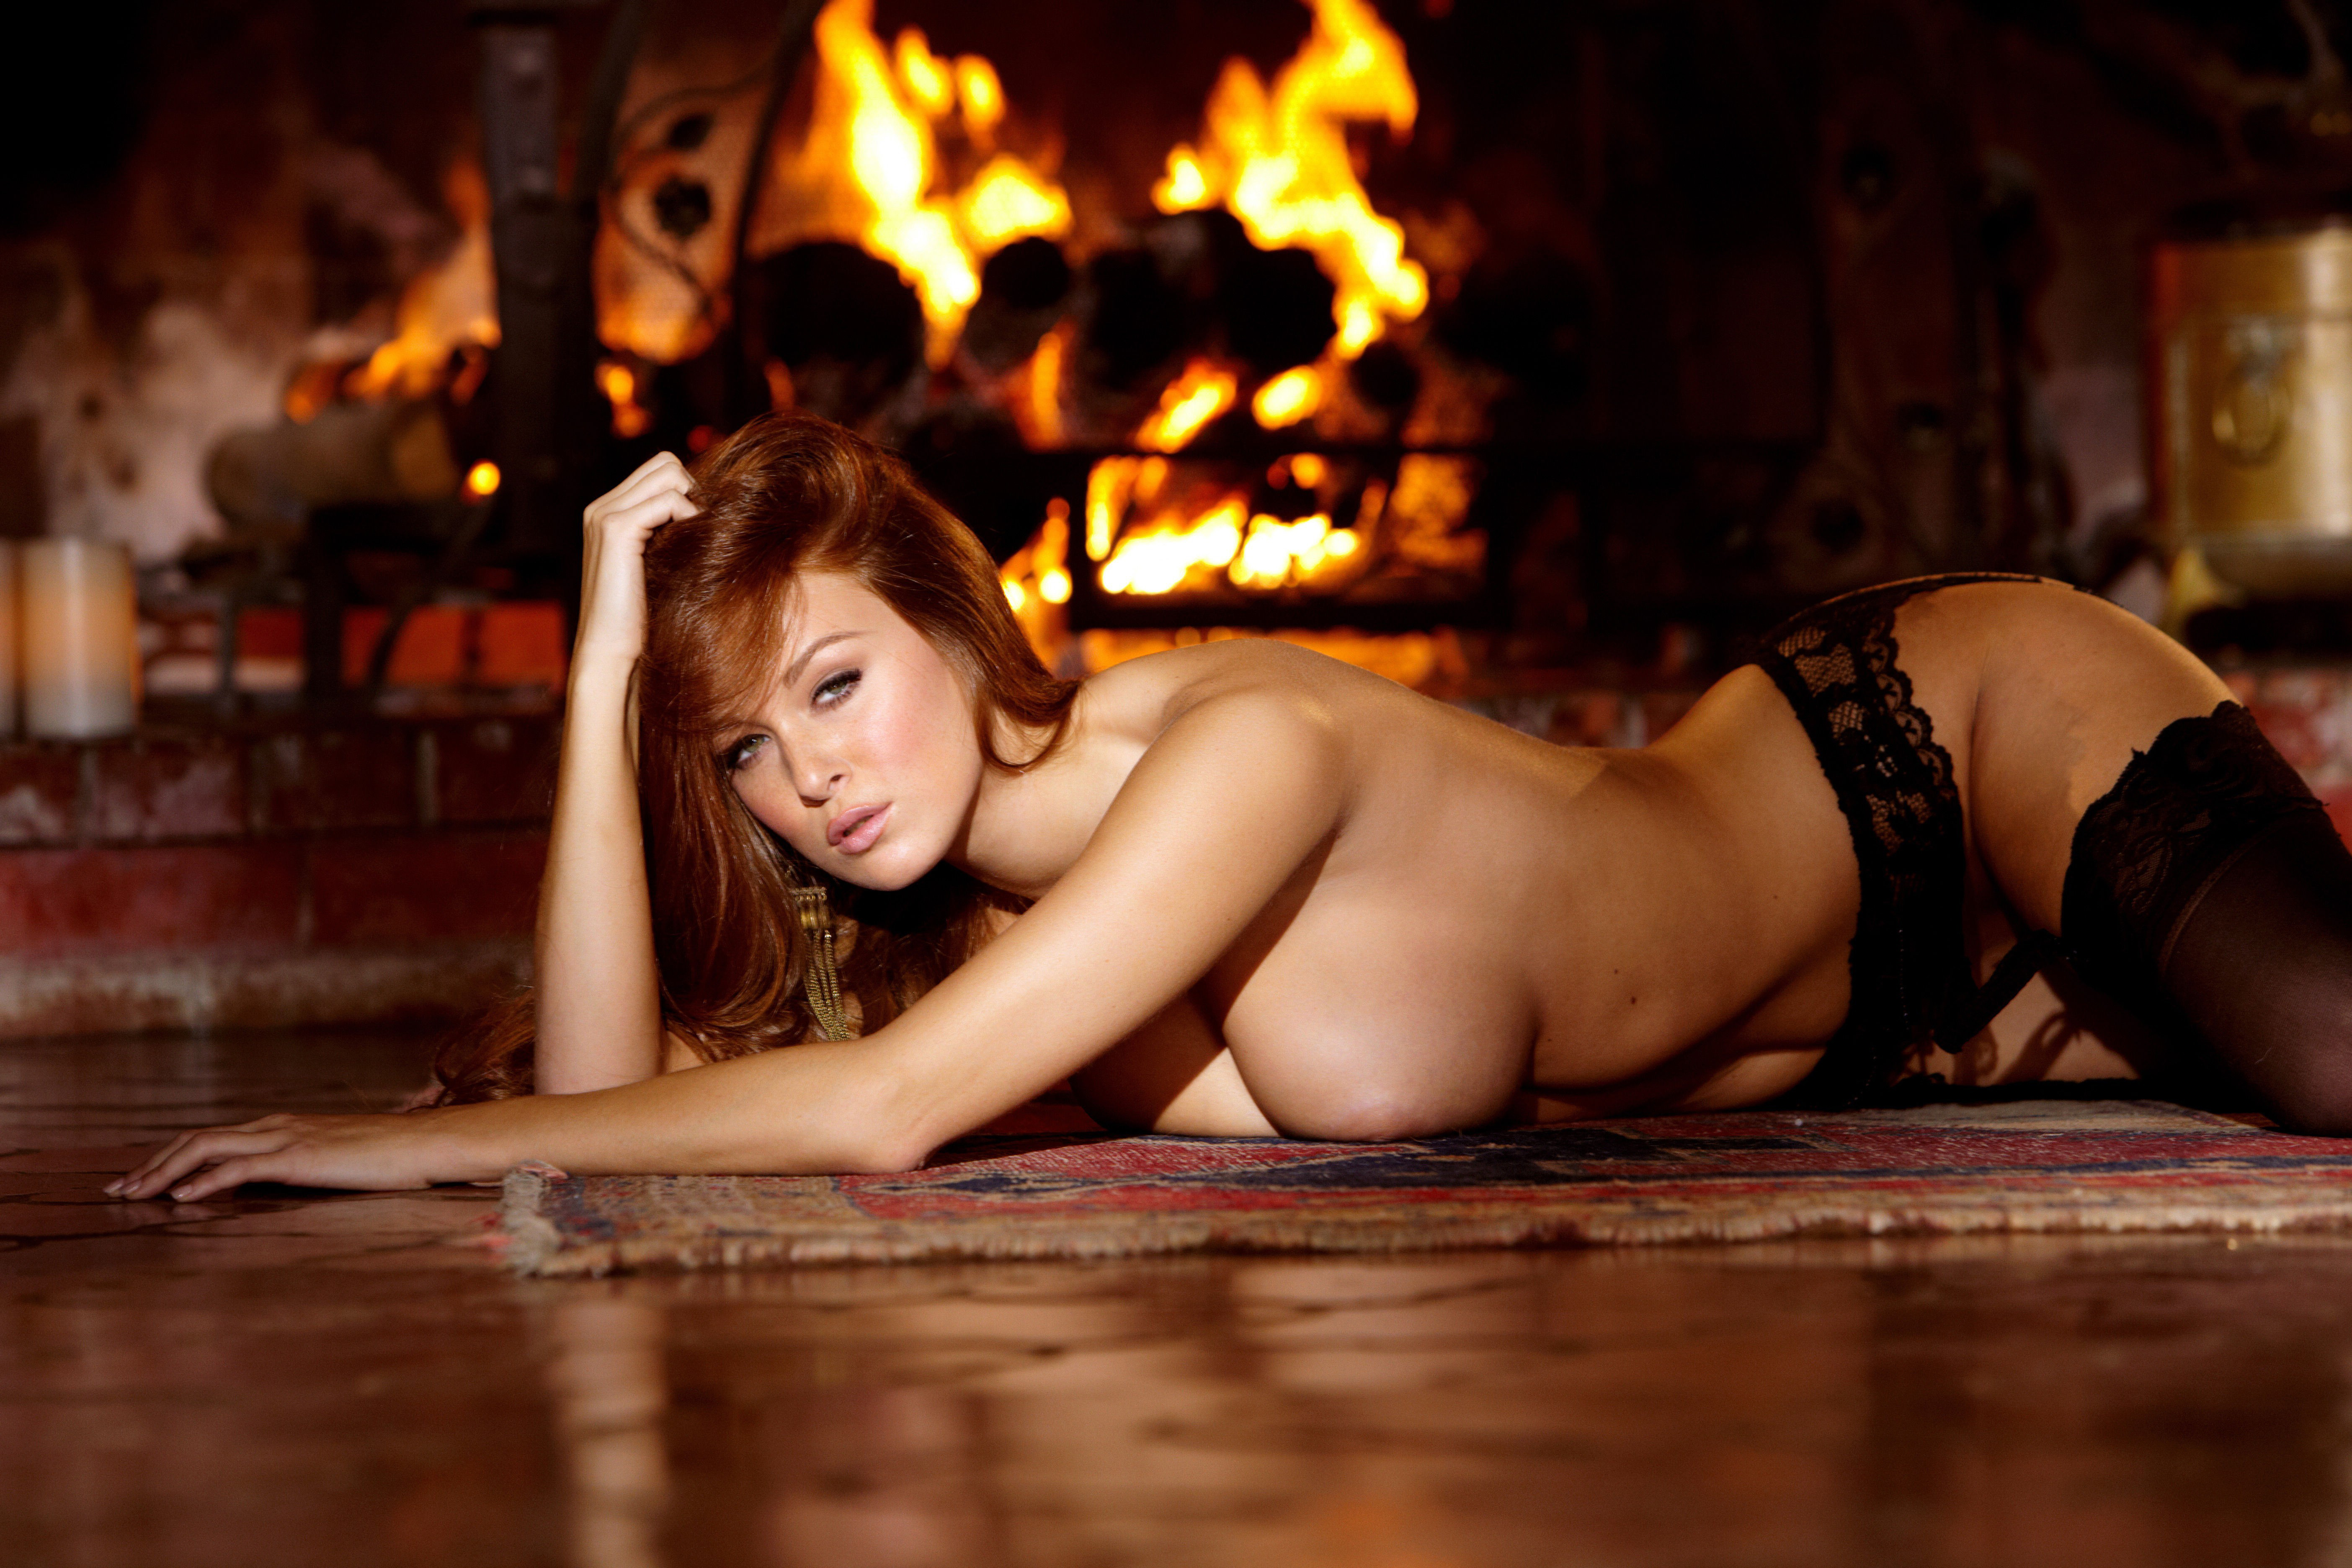 nude fireplace pictures Noninheritable Insurance